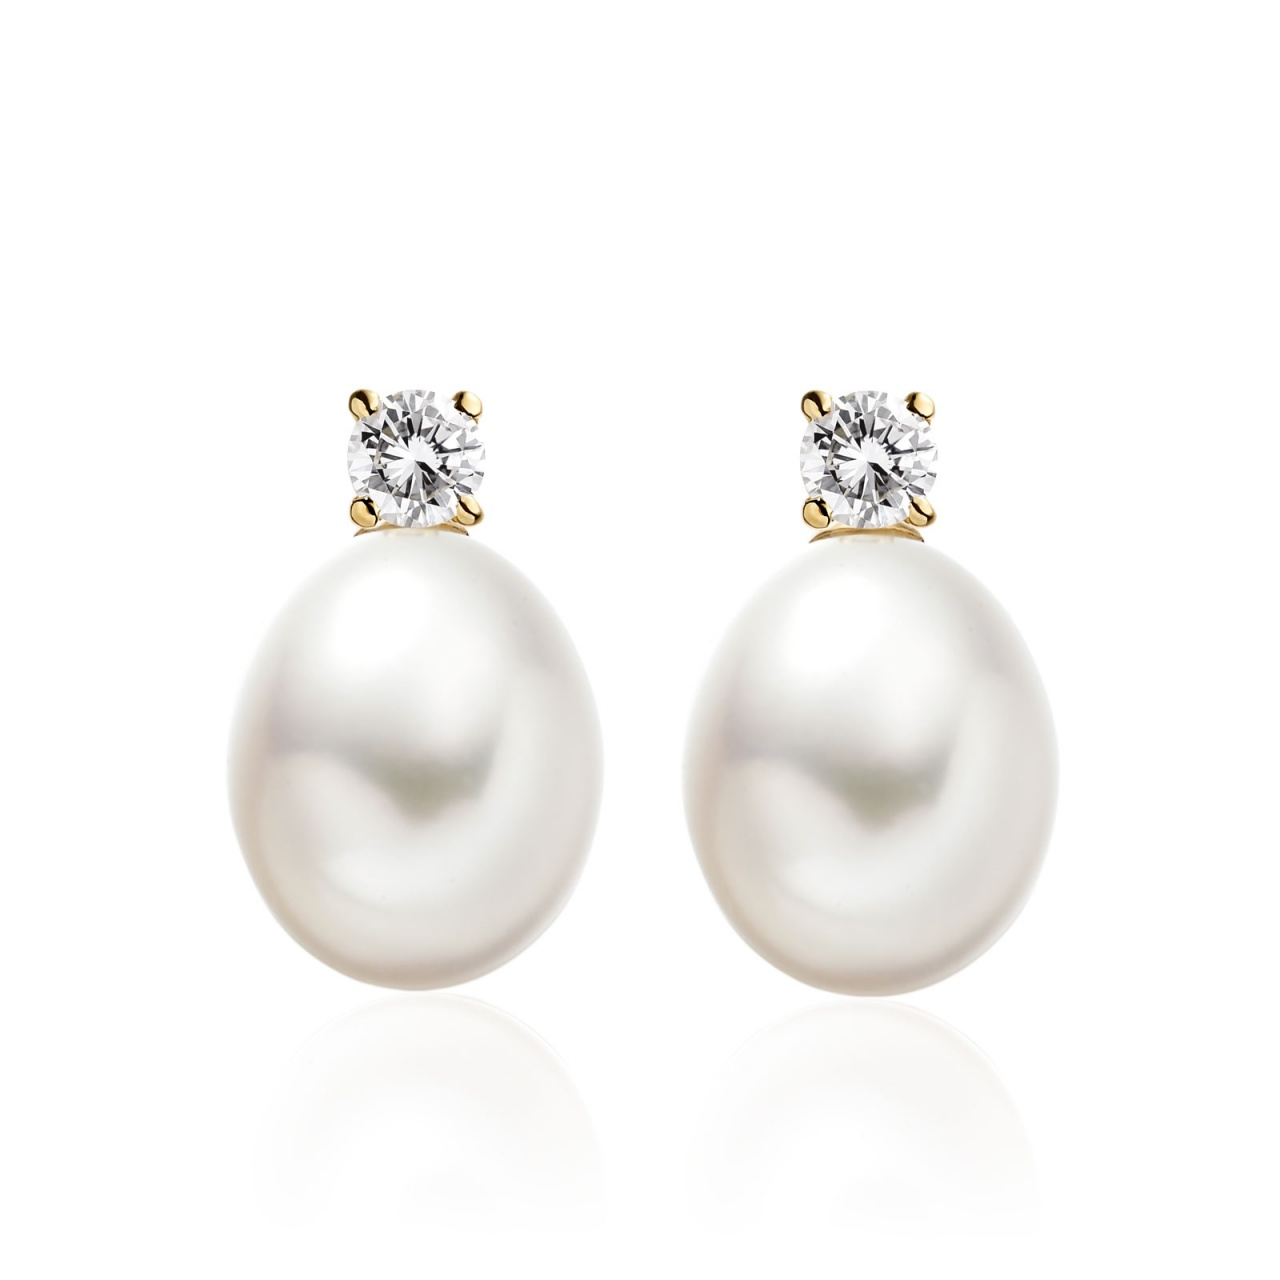 Diamond Studs in Yellow Gold with White Freshwater Pearls-FEWDYG0491-1